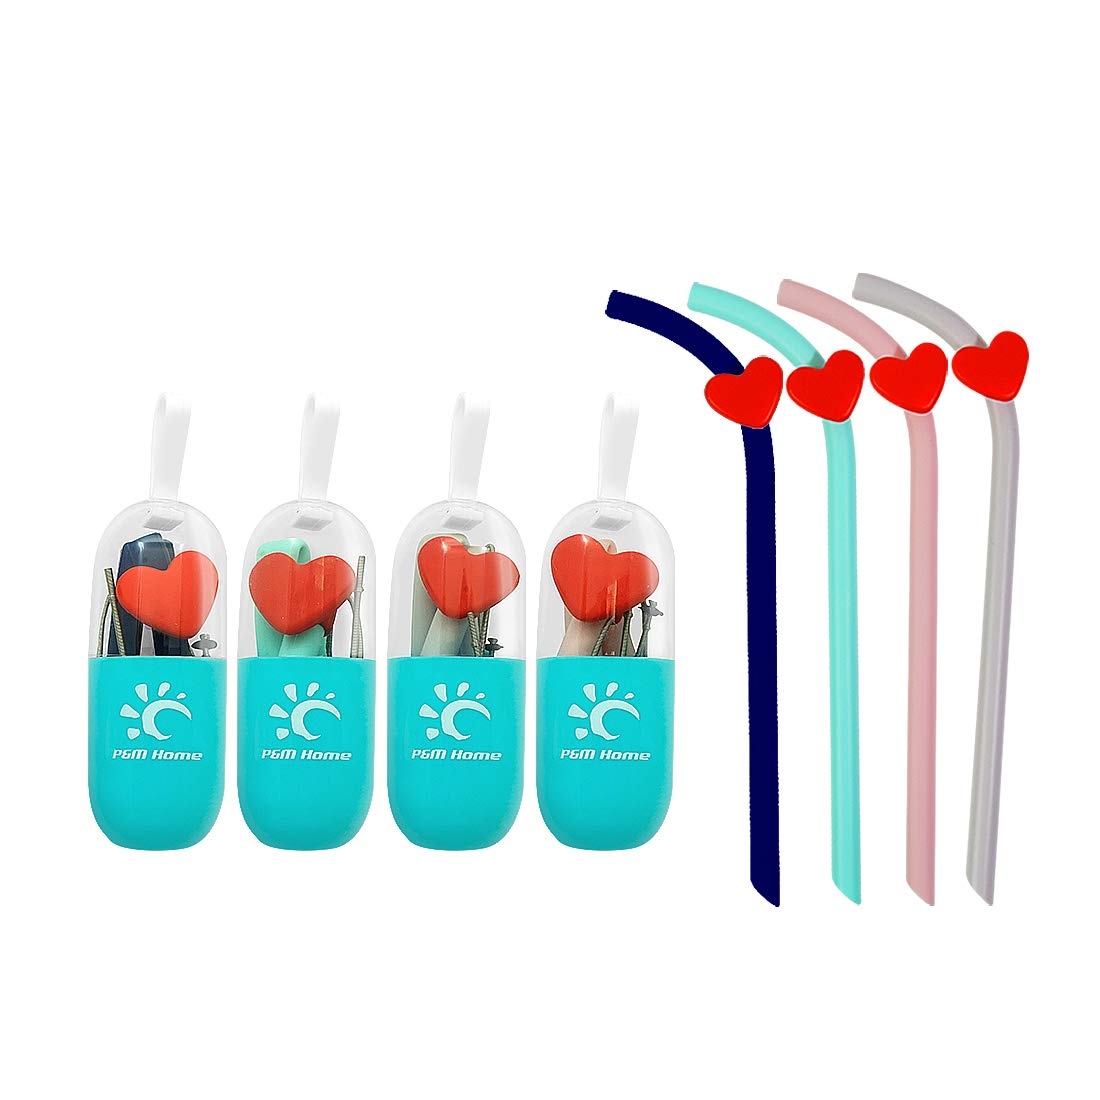 Silicone Reusable Drinking Straws, 4 Collapsible Straws with 4 Carrying Cases and 4 Cleaning Brushes, BPA Free, FDA Approved, Portable for Traveling, 4 Pack, 12 Pieces Set